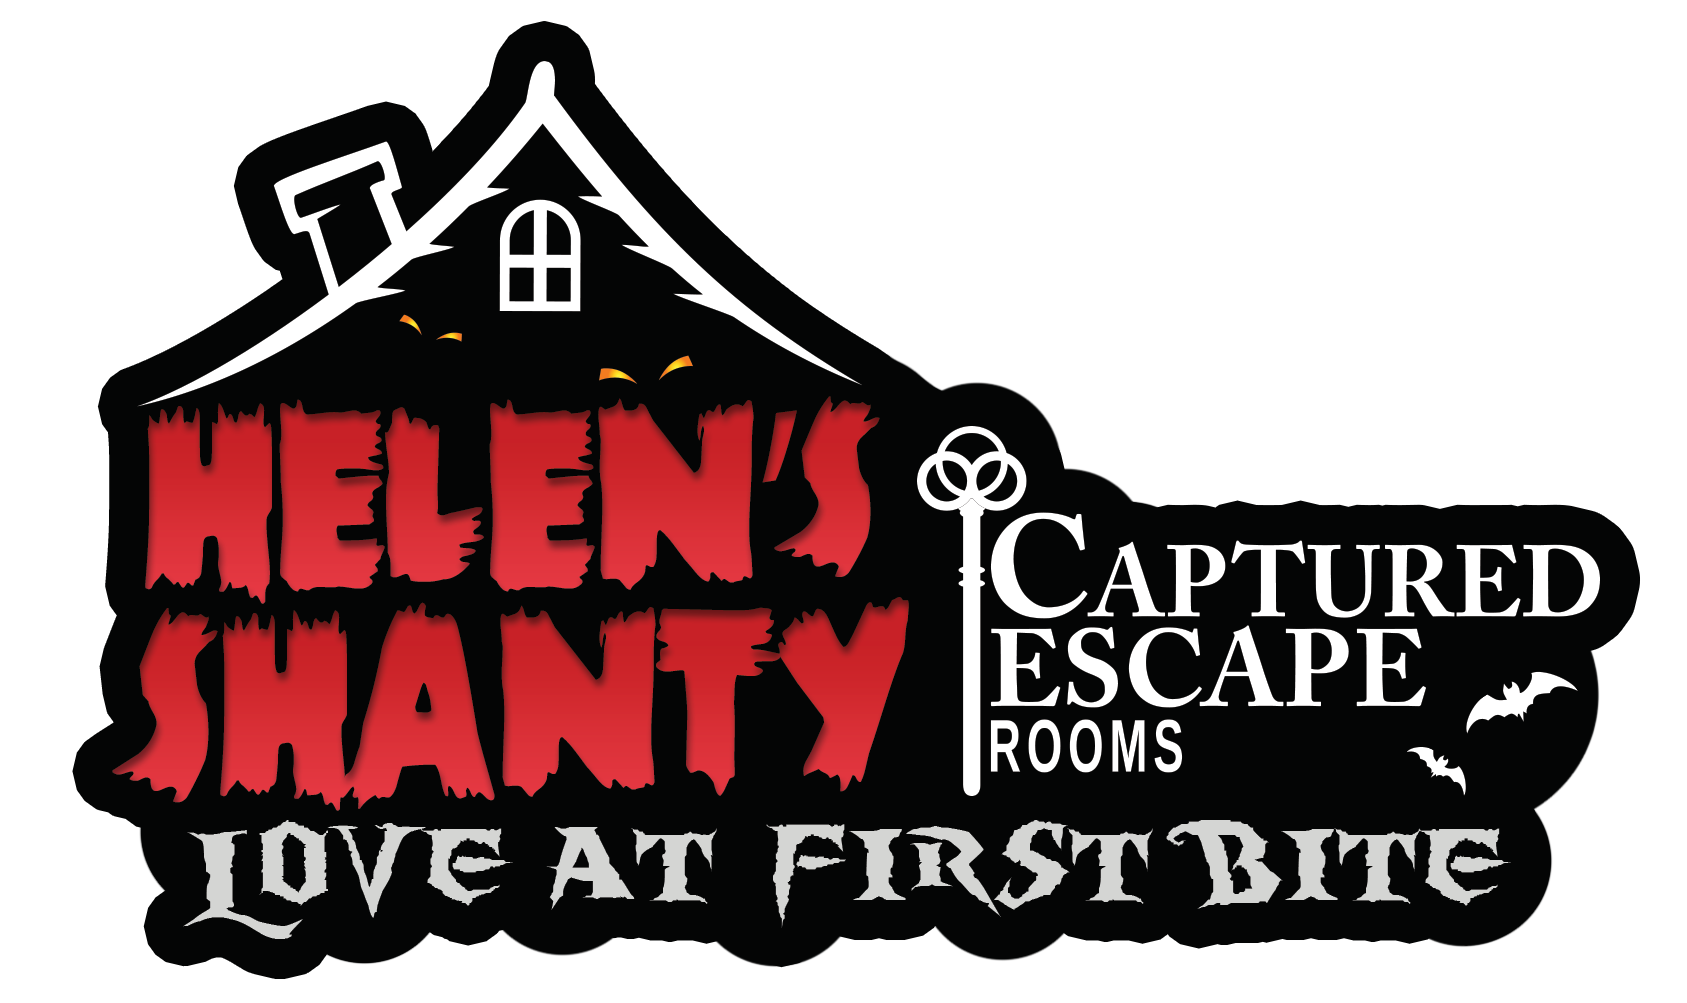 helens_shanty_escape_room.png